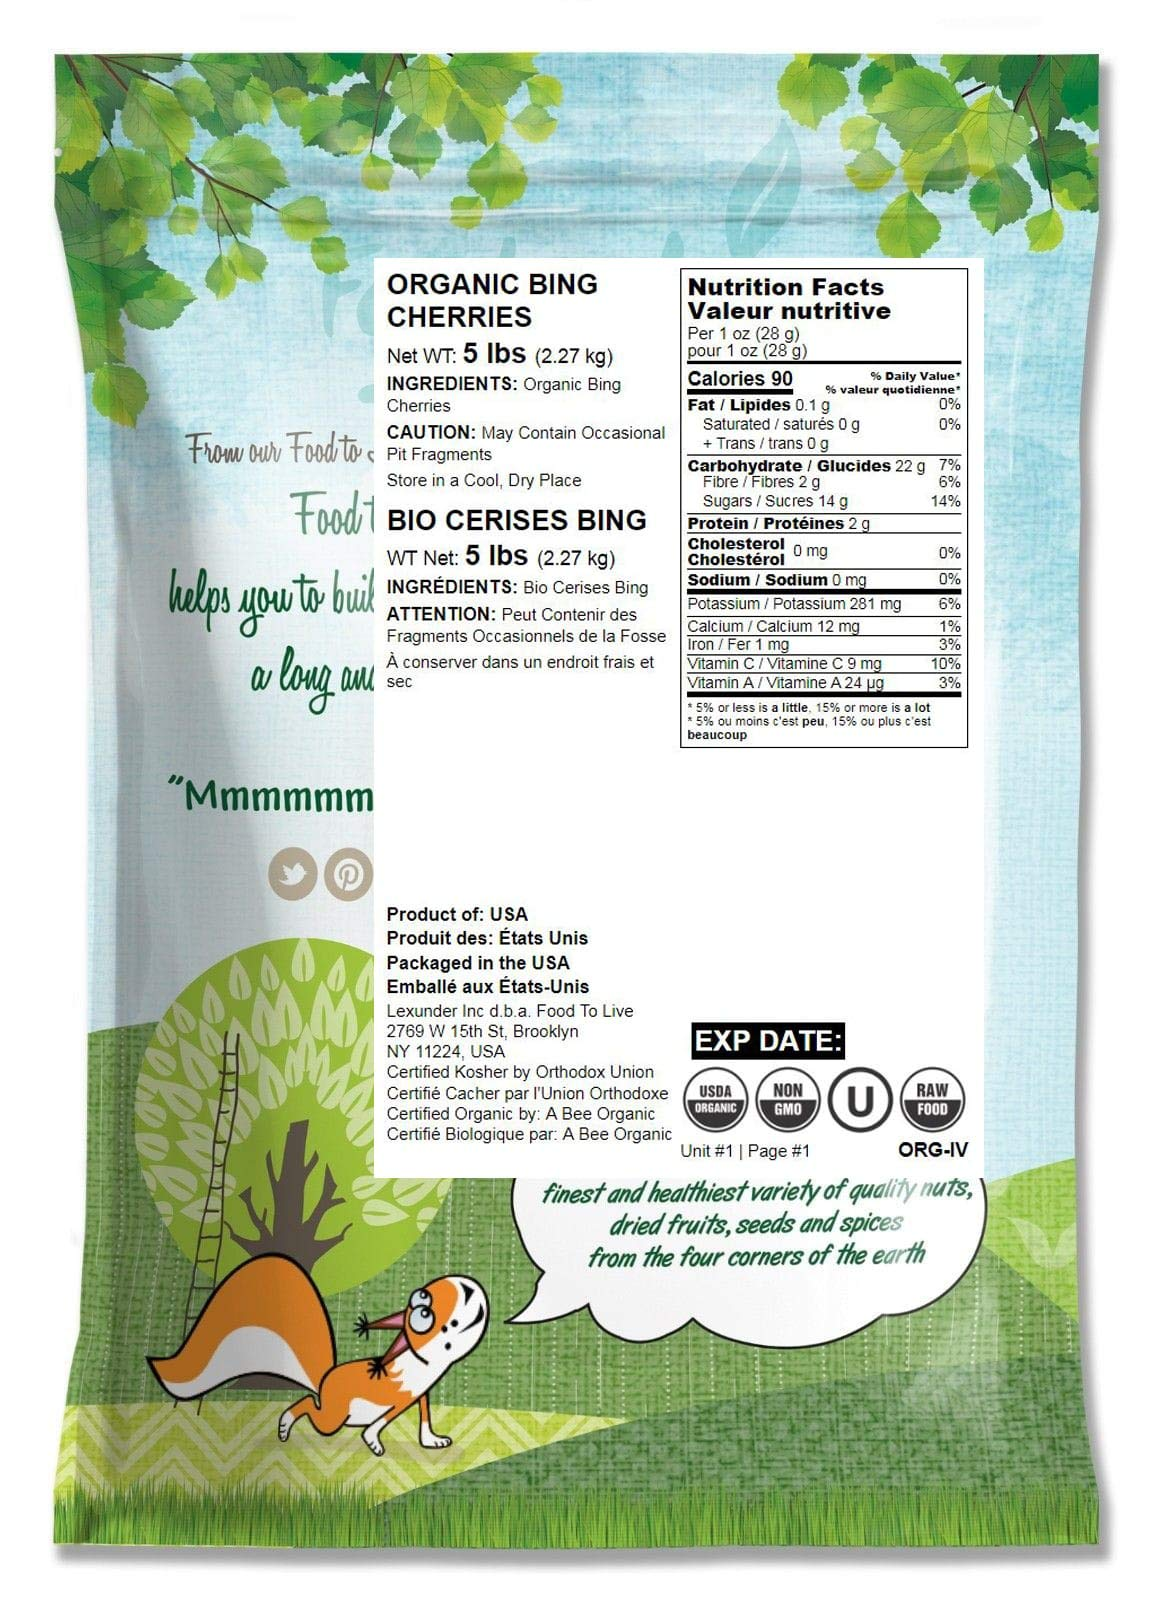 Organic Bing Cherries, 5 Pounds - California Sun-Dried Sour Cherries, Non-GMO, Kosher, Putted, Tart, Unsweetened, Unsulfured, Non-Infused, Non-Oil Added, Non-Irradiated, Vegan, Raw, Bulk by Food to Live (Image #2)